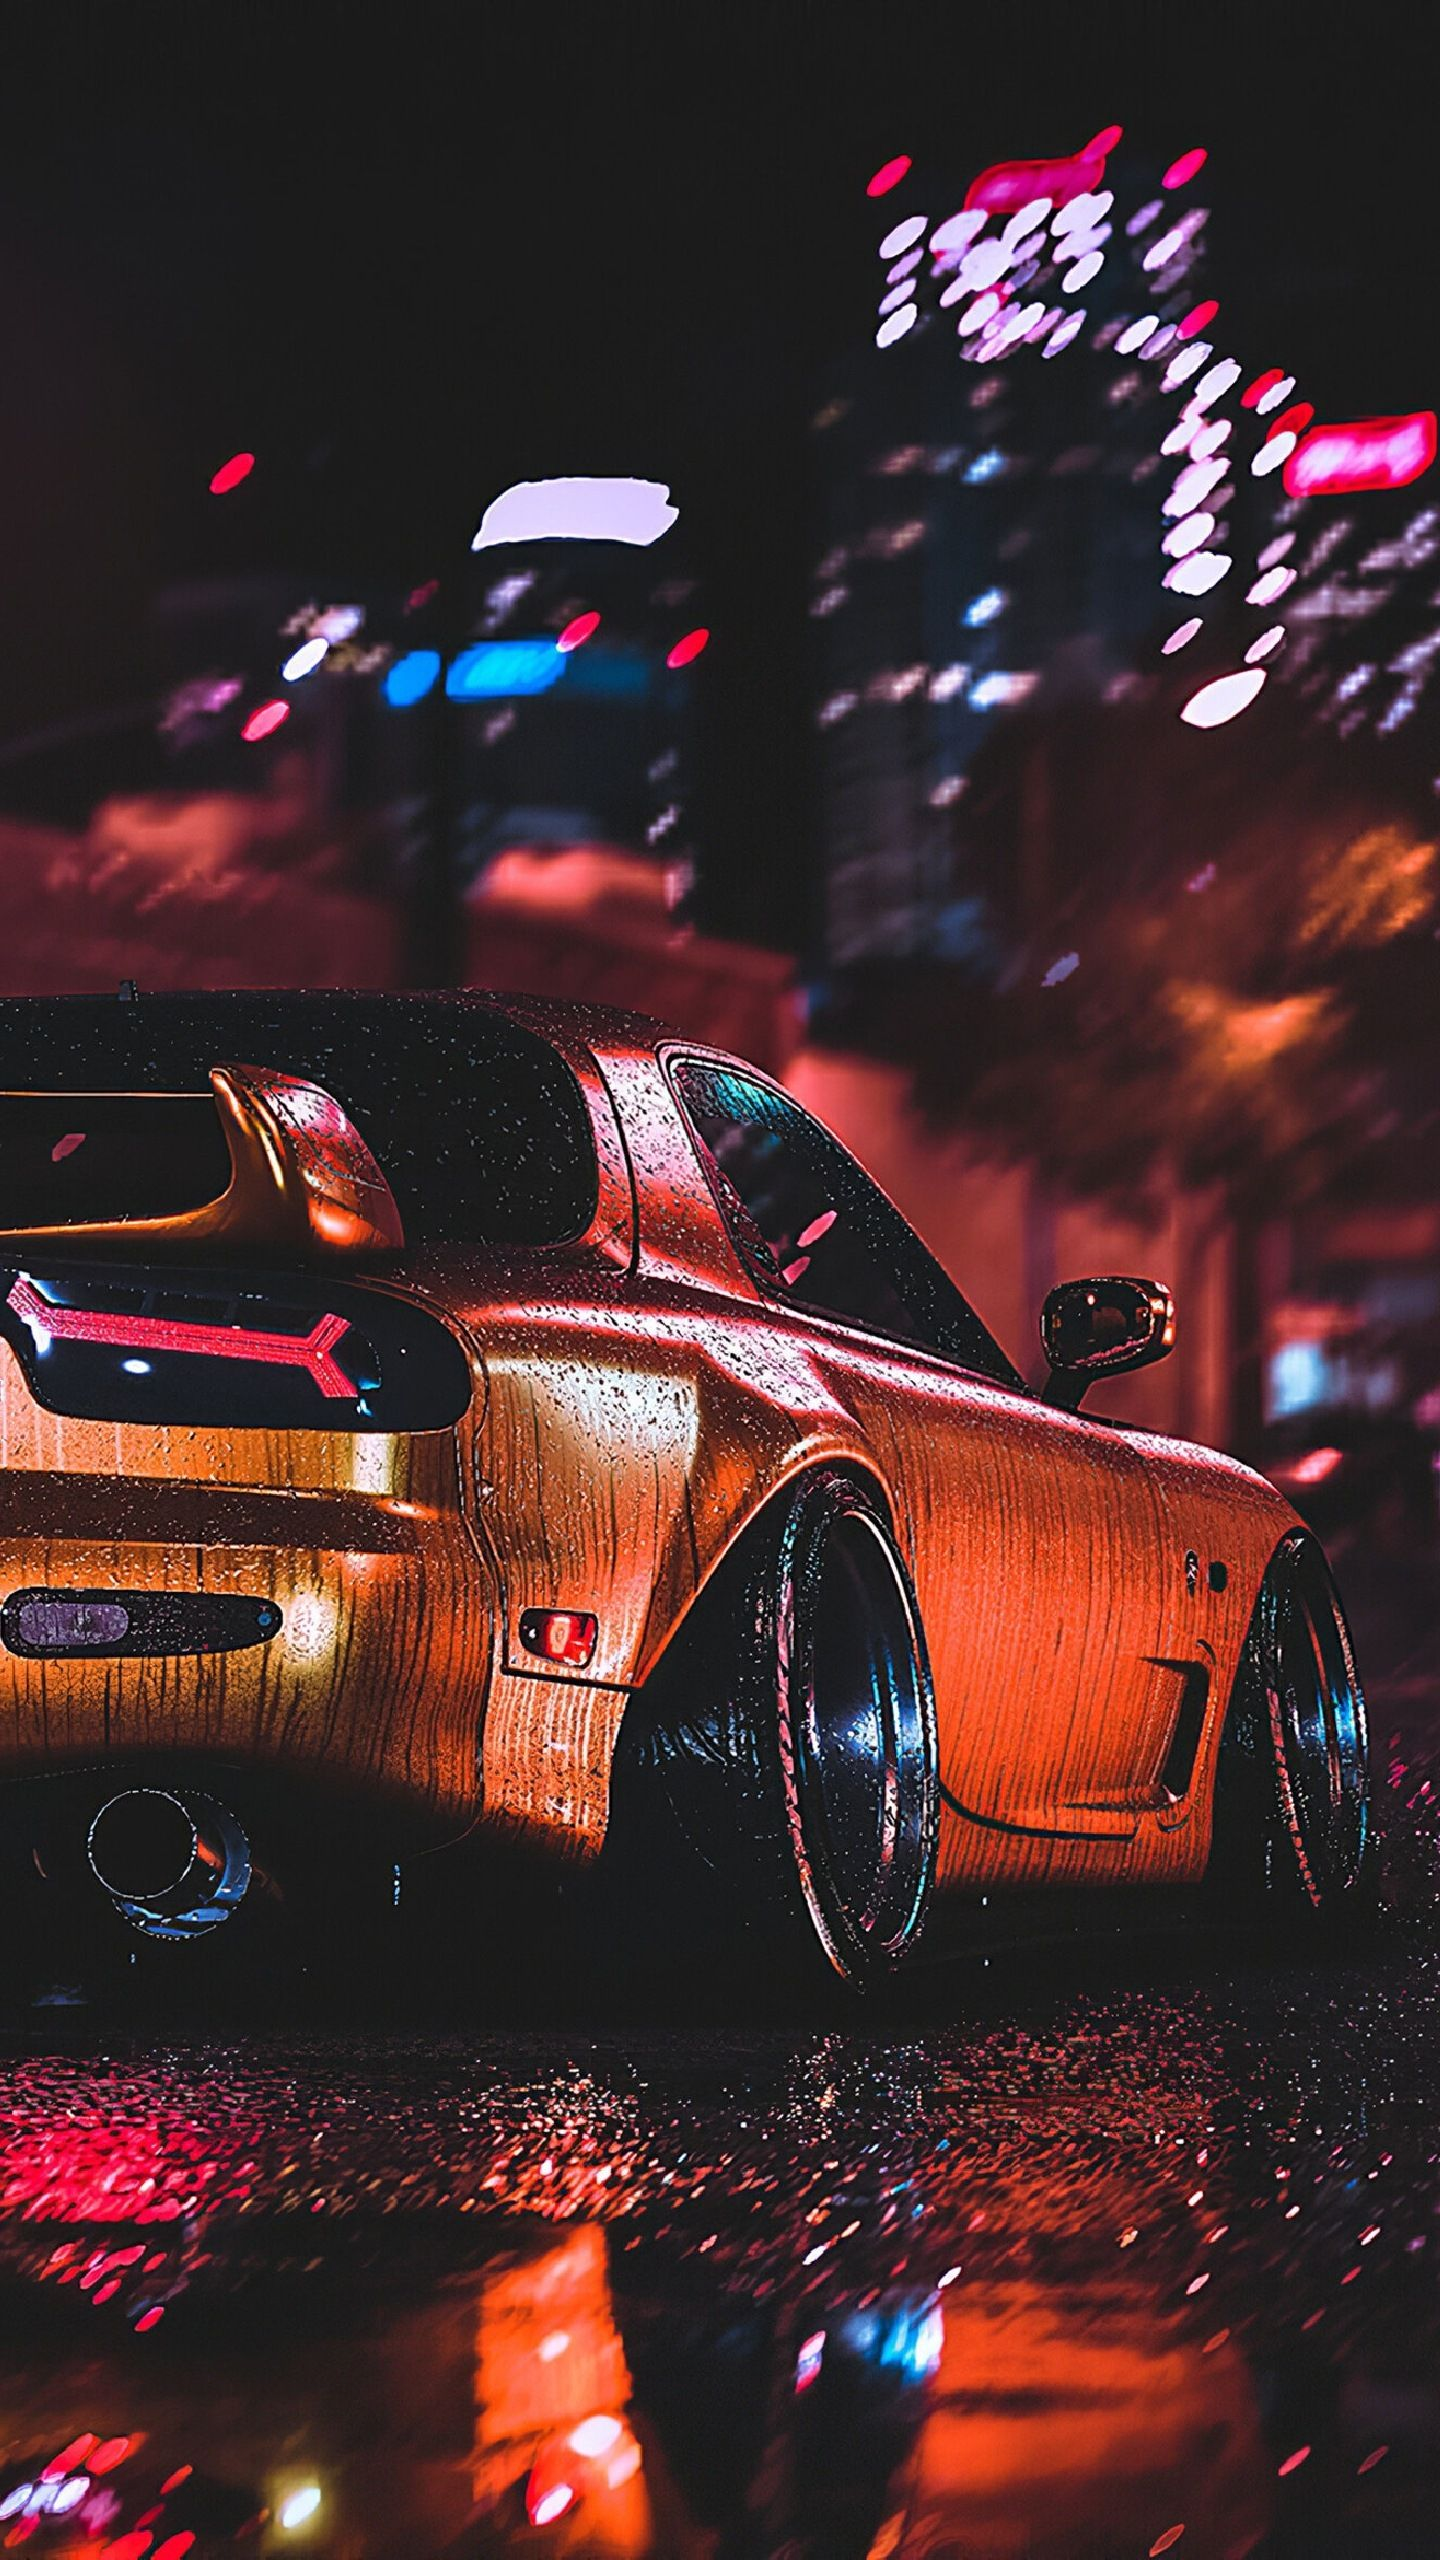 How to wallpaper a door. Cars Mobile Uhd 2k Wallpapers 1440x2560 078 In 2021 New Car Wallpaper Best Jdm Cars Sports Car Wallpaper